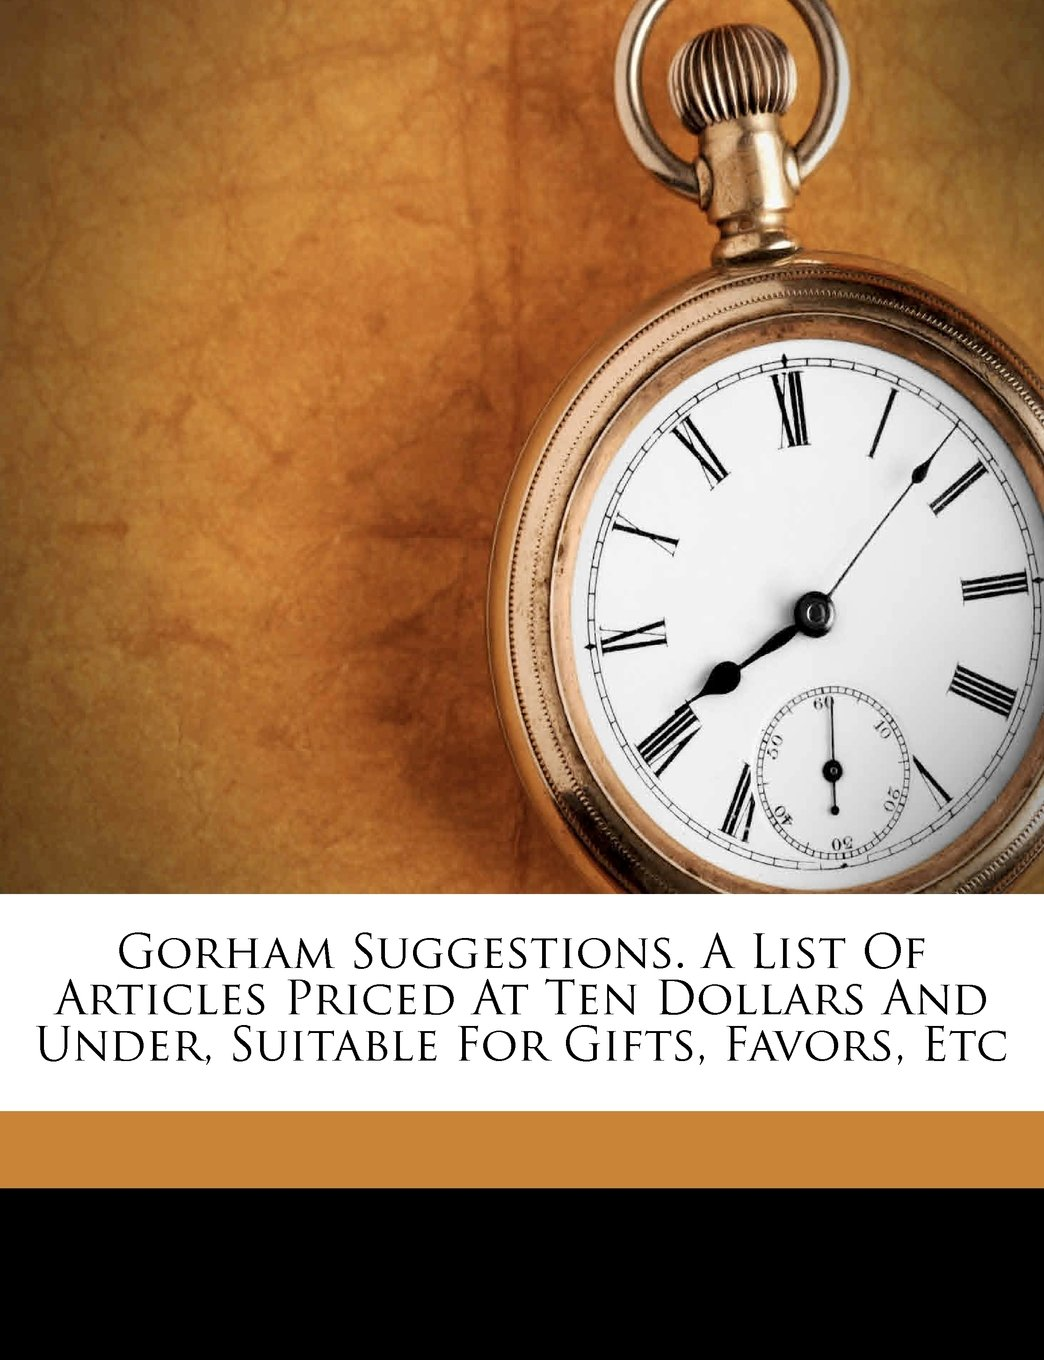 Gorham Suggestions. A List Of Articles Priced At Ten Dollars And Under, Suitable For Gifts, Favors, Etc ebook